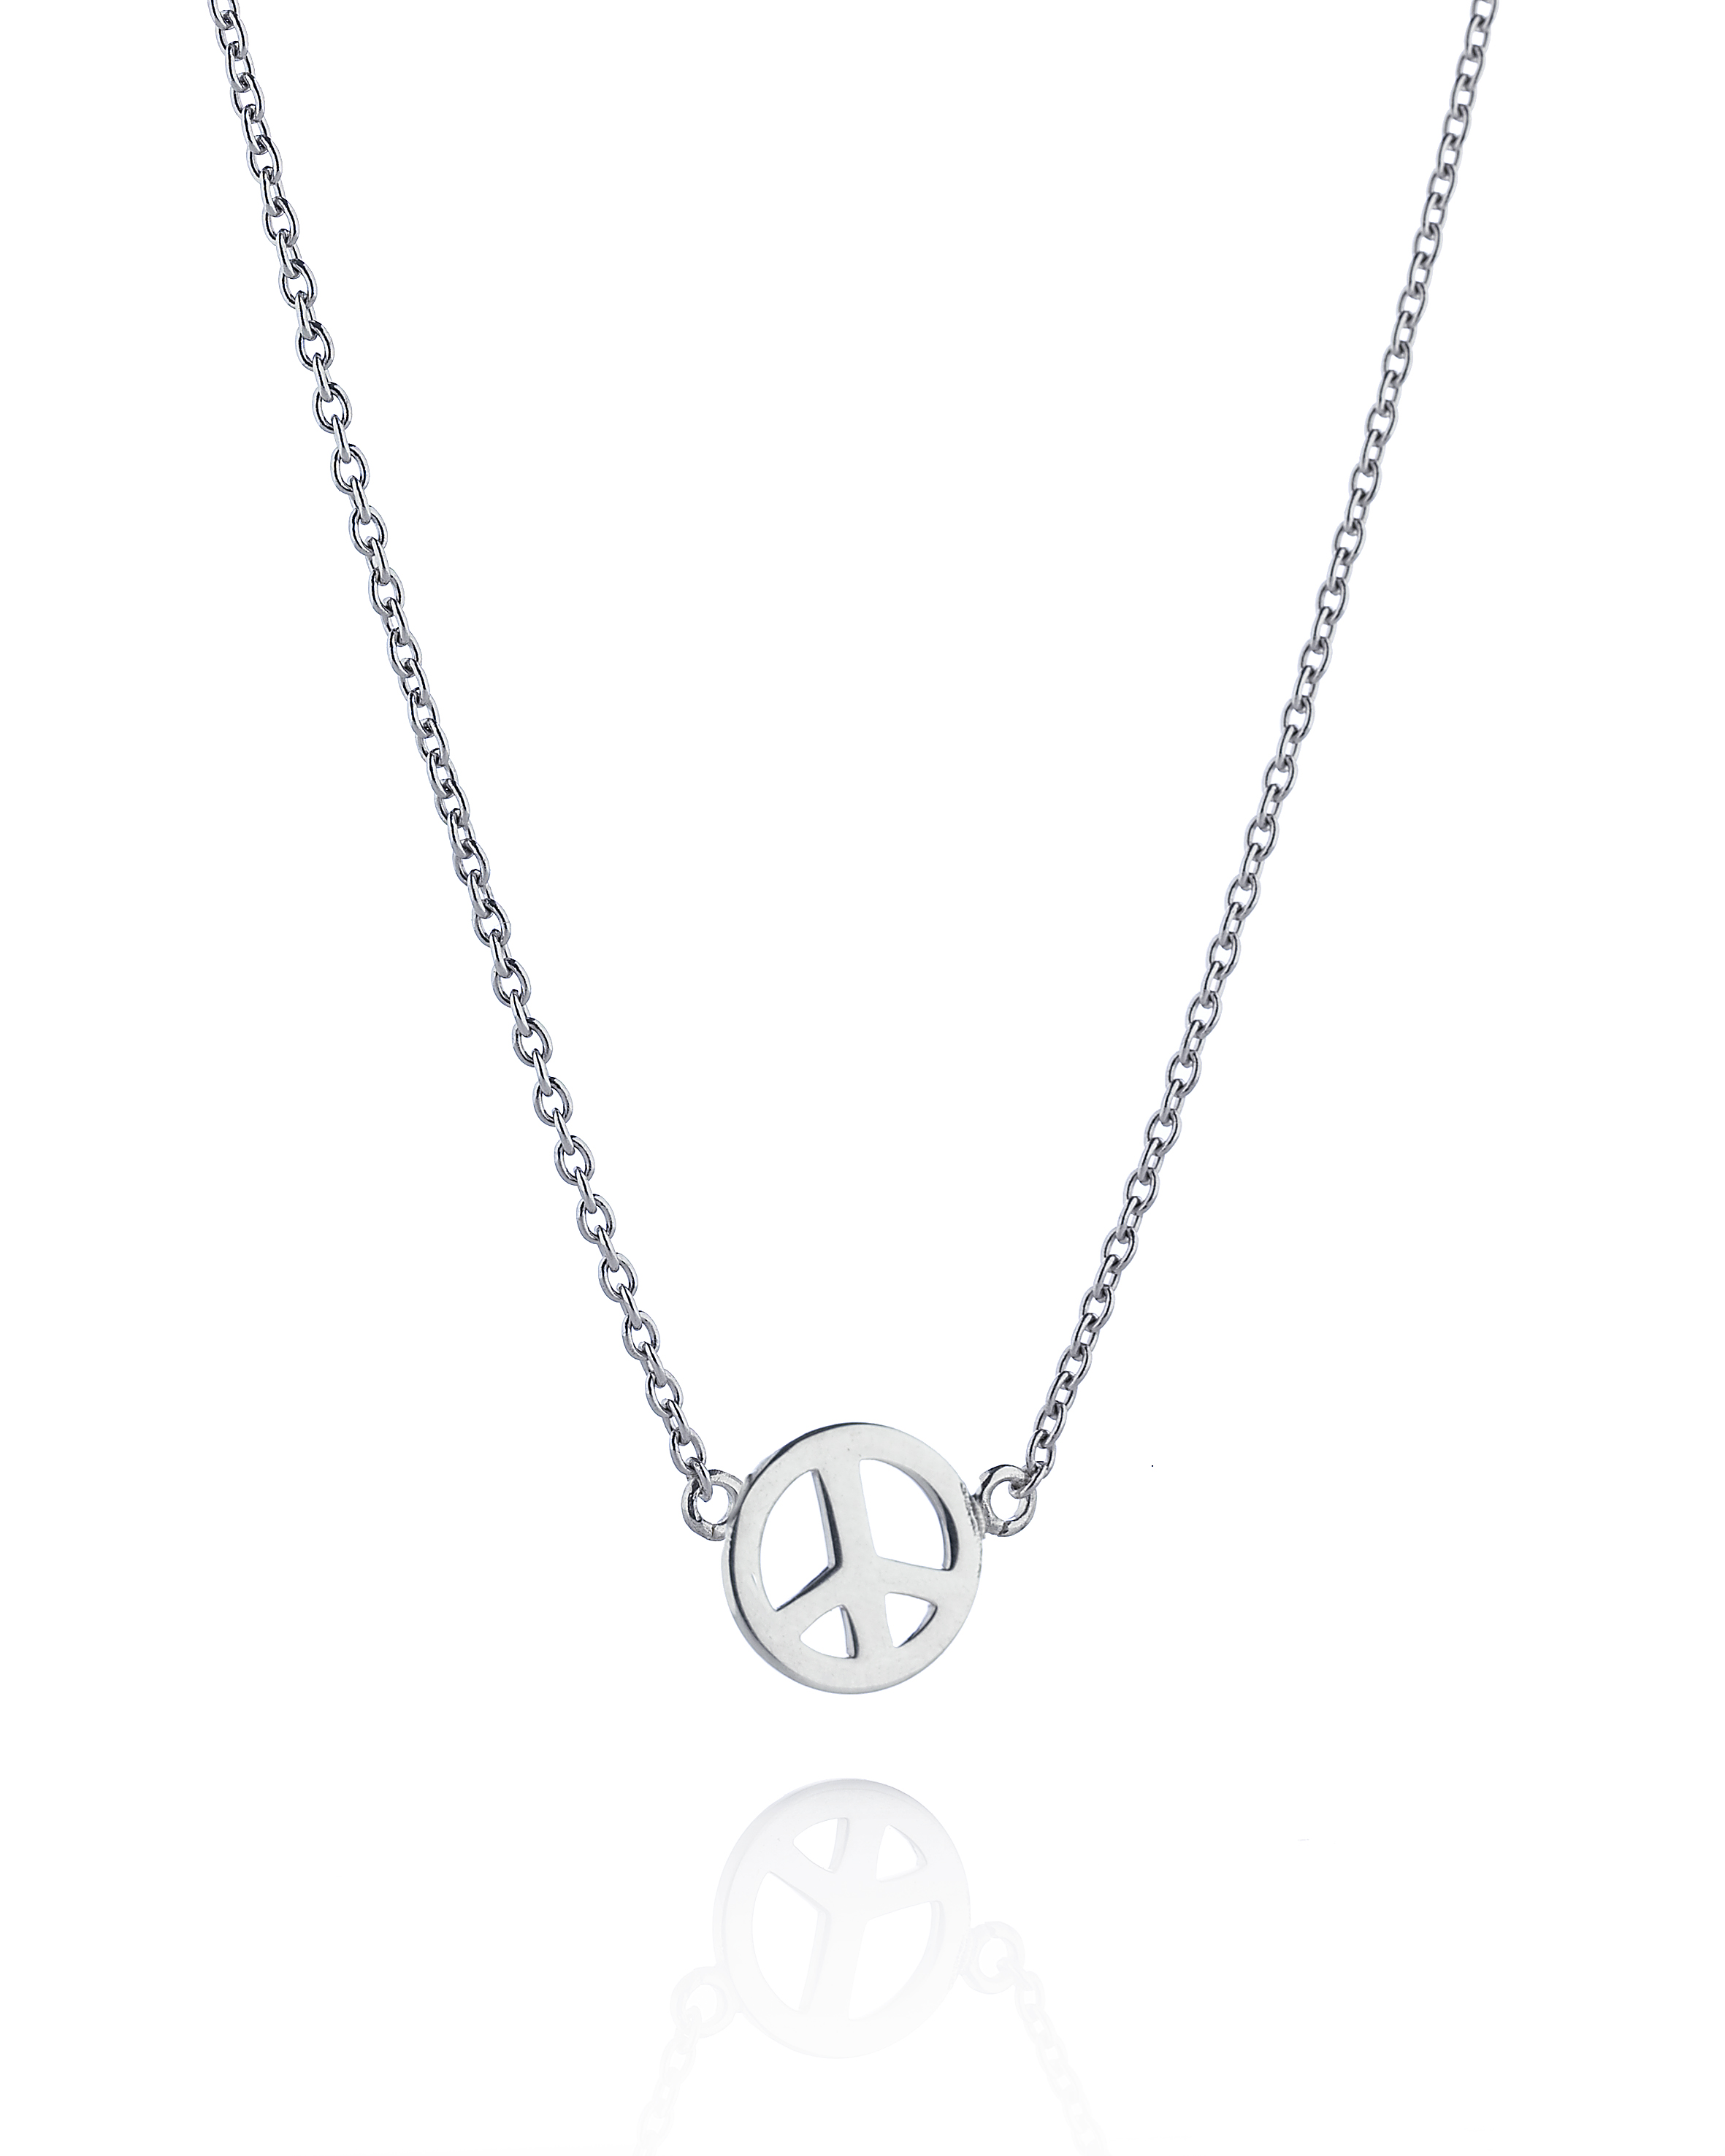 Mini Peace Necklace - Herbertsguldshop ba8913461a2ec